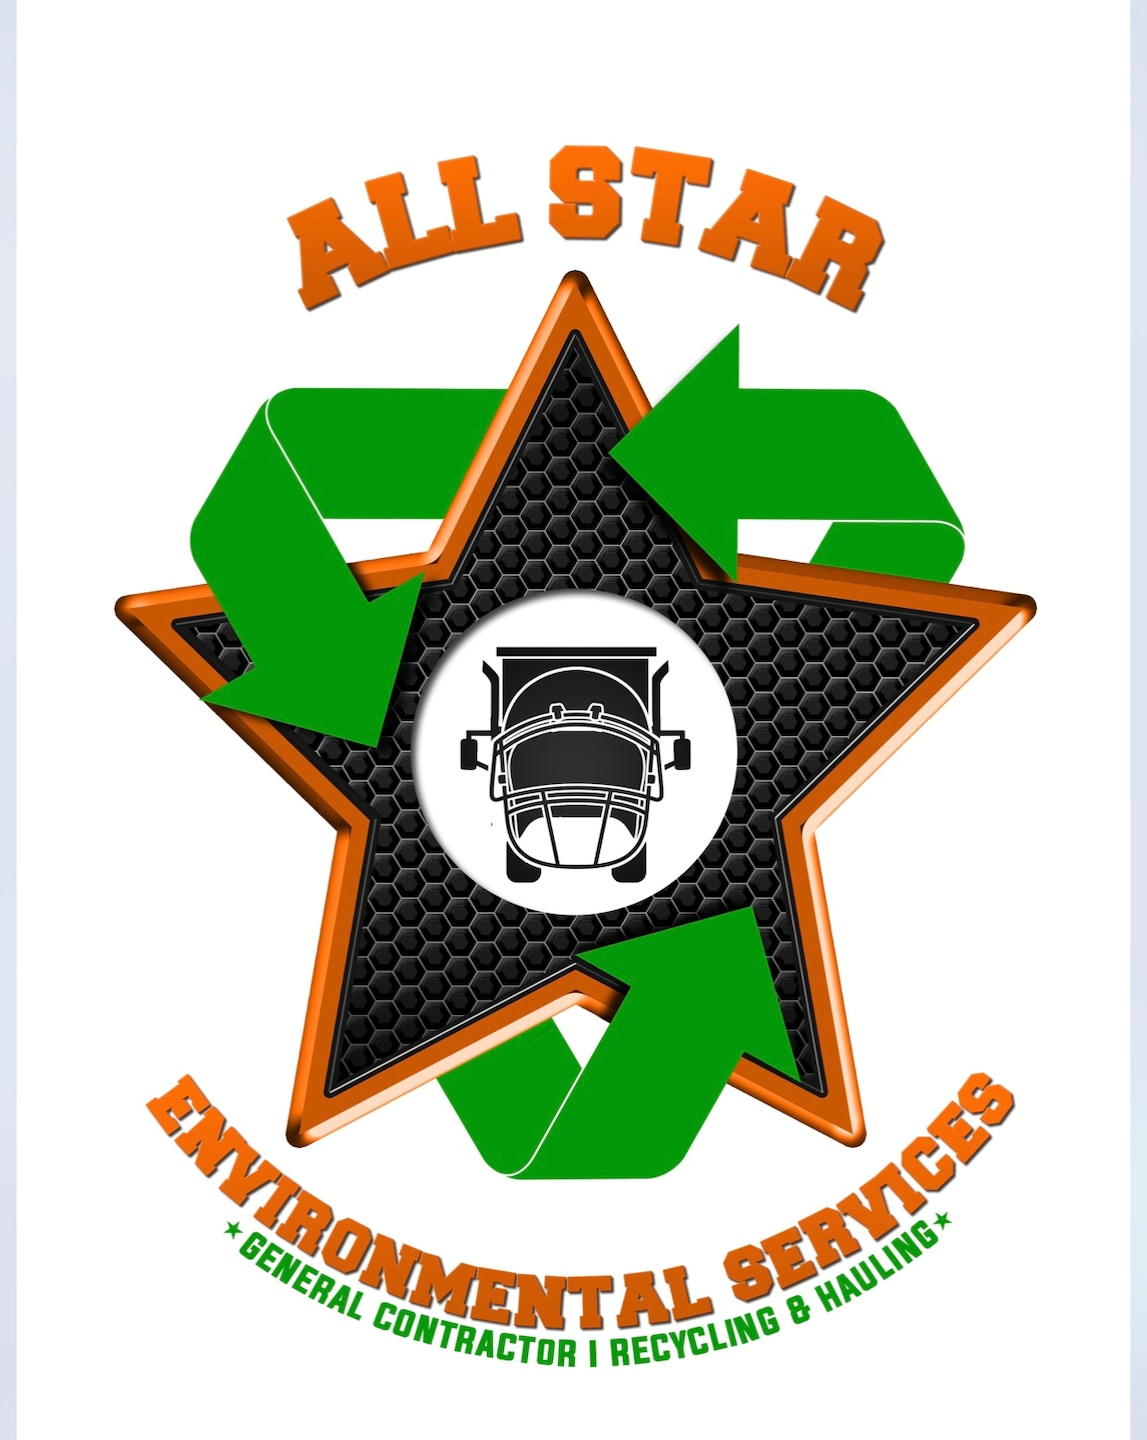 ALL STAR RECYCLING & JUNK HAULING